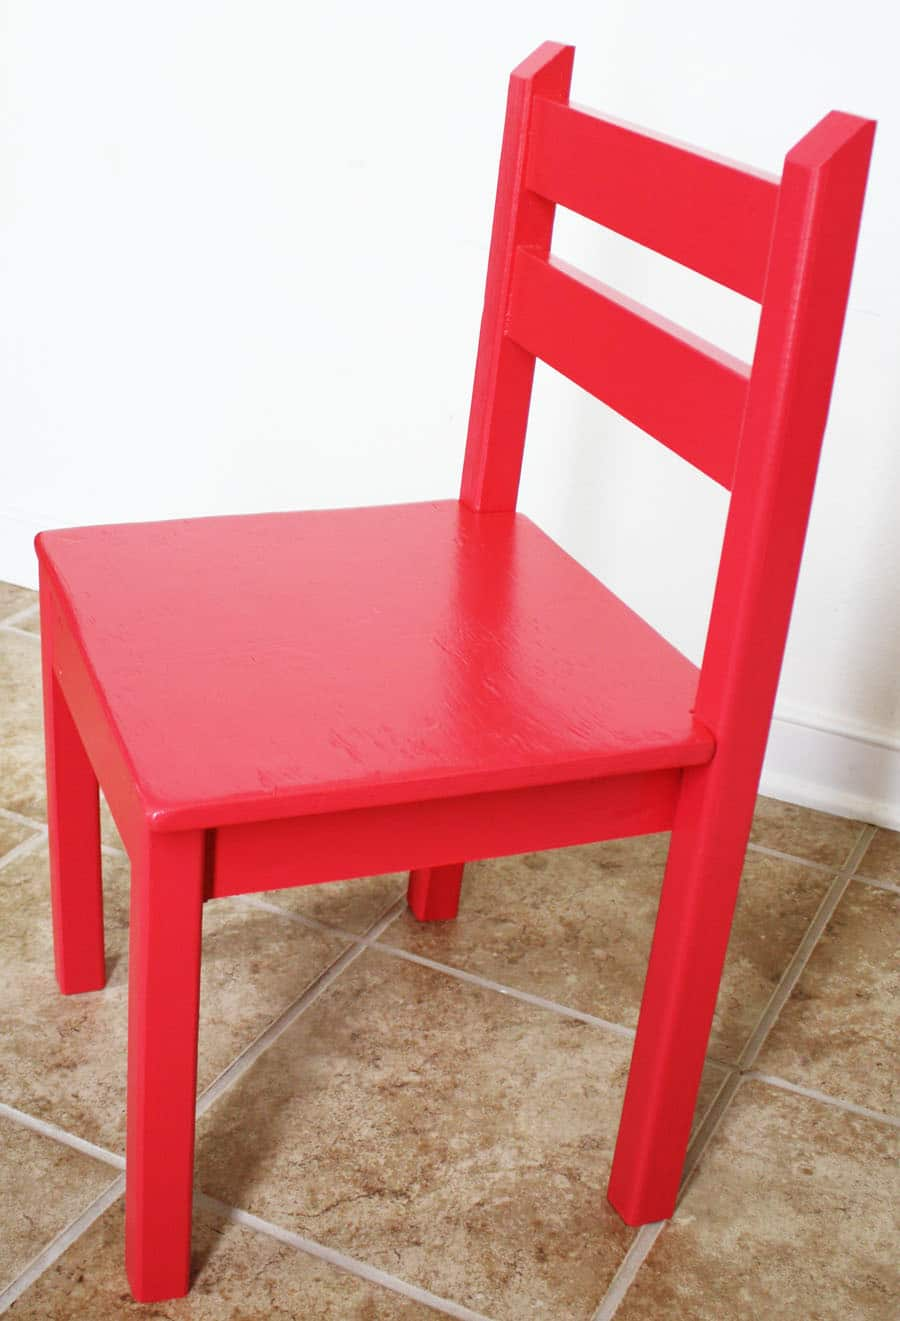 How To Build A DIY Kids Chair